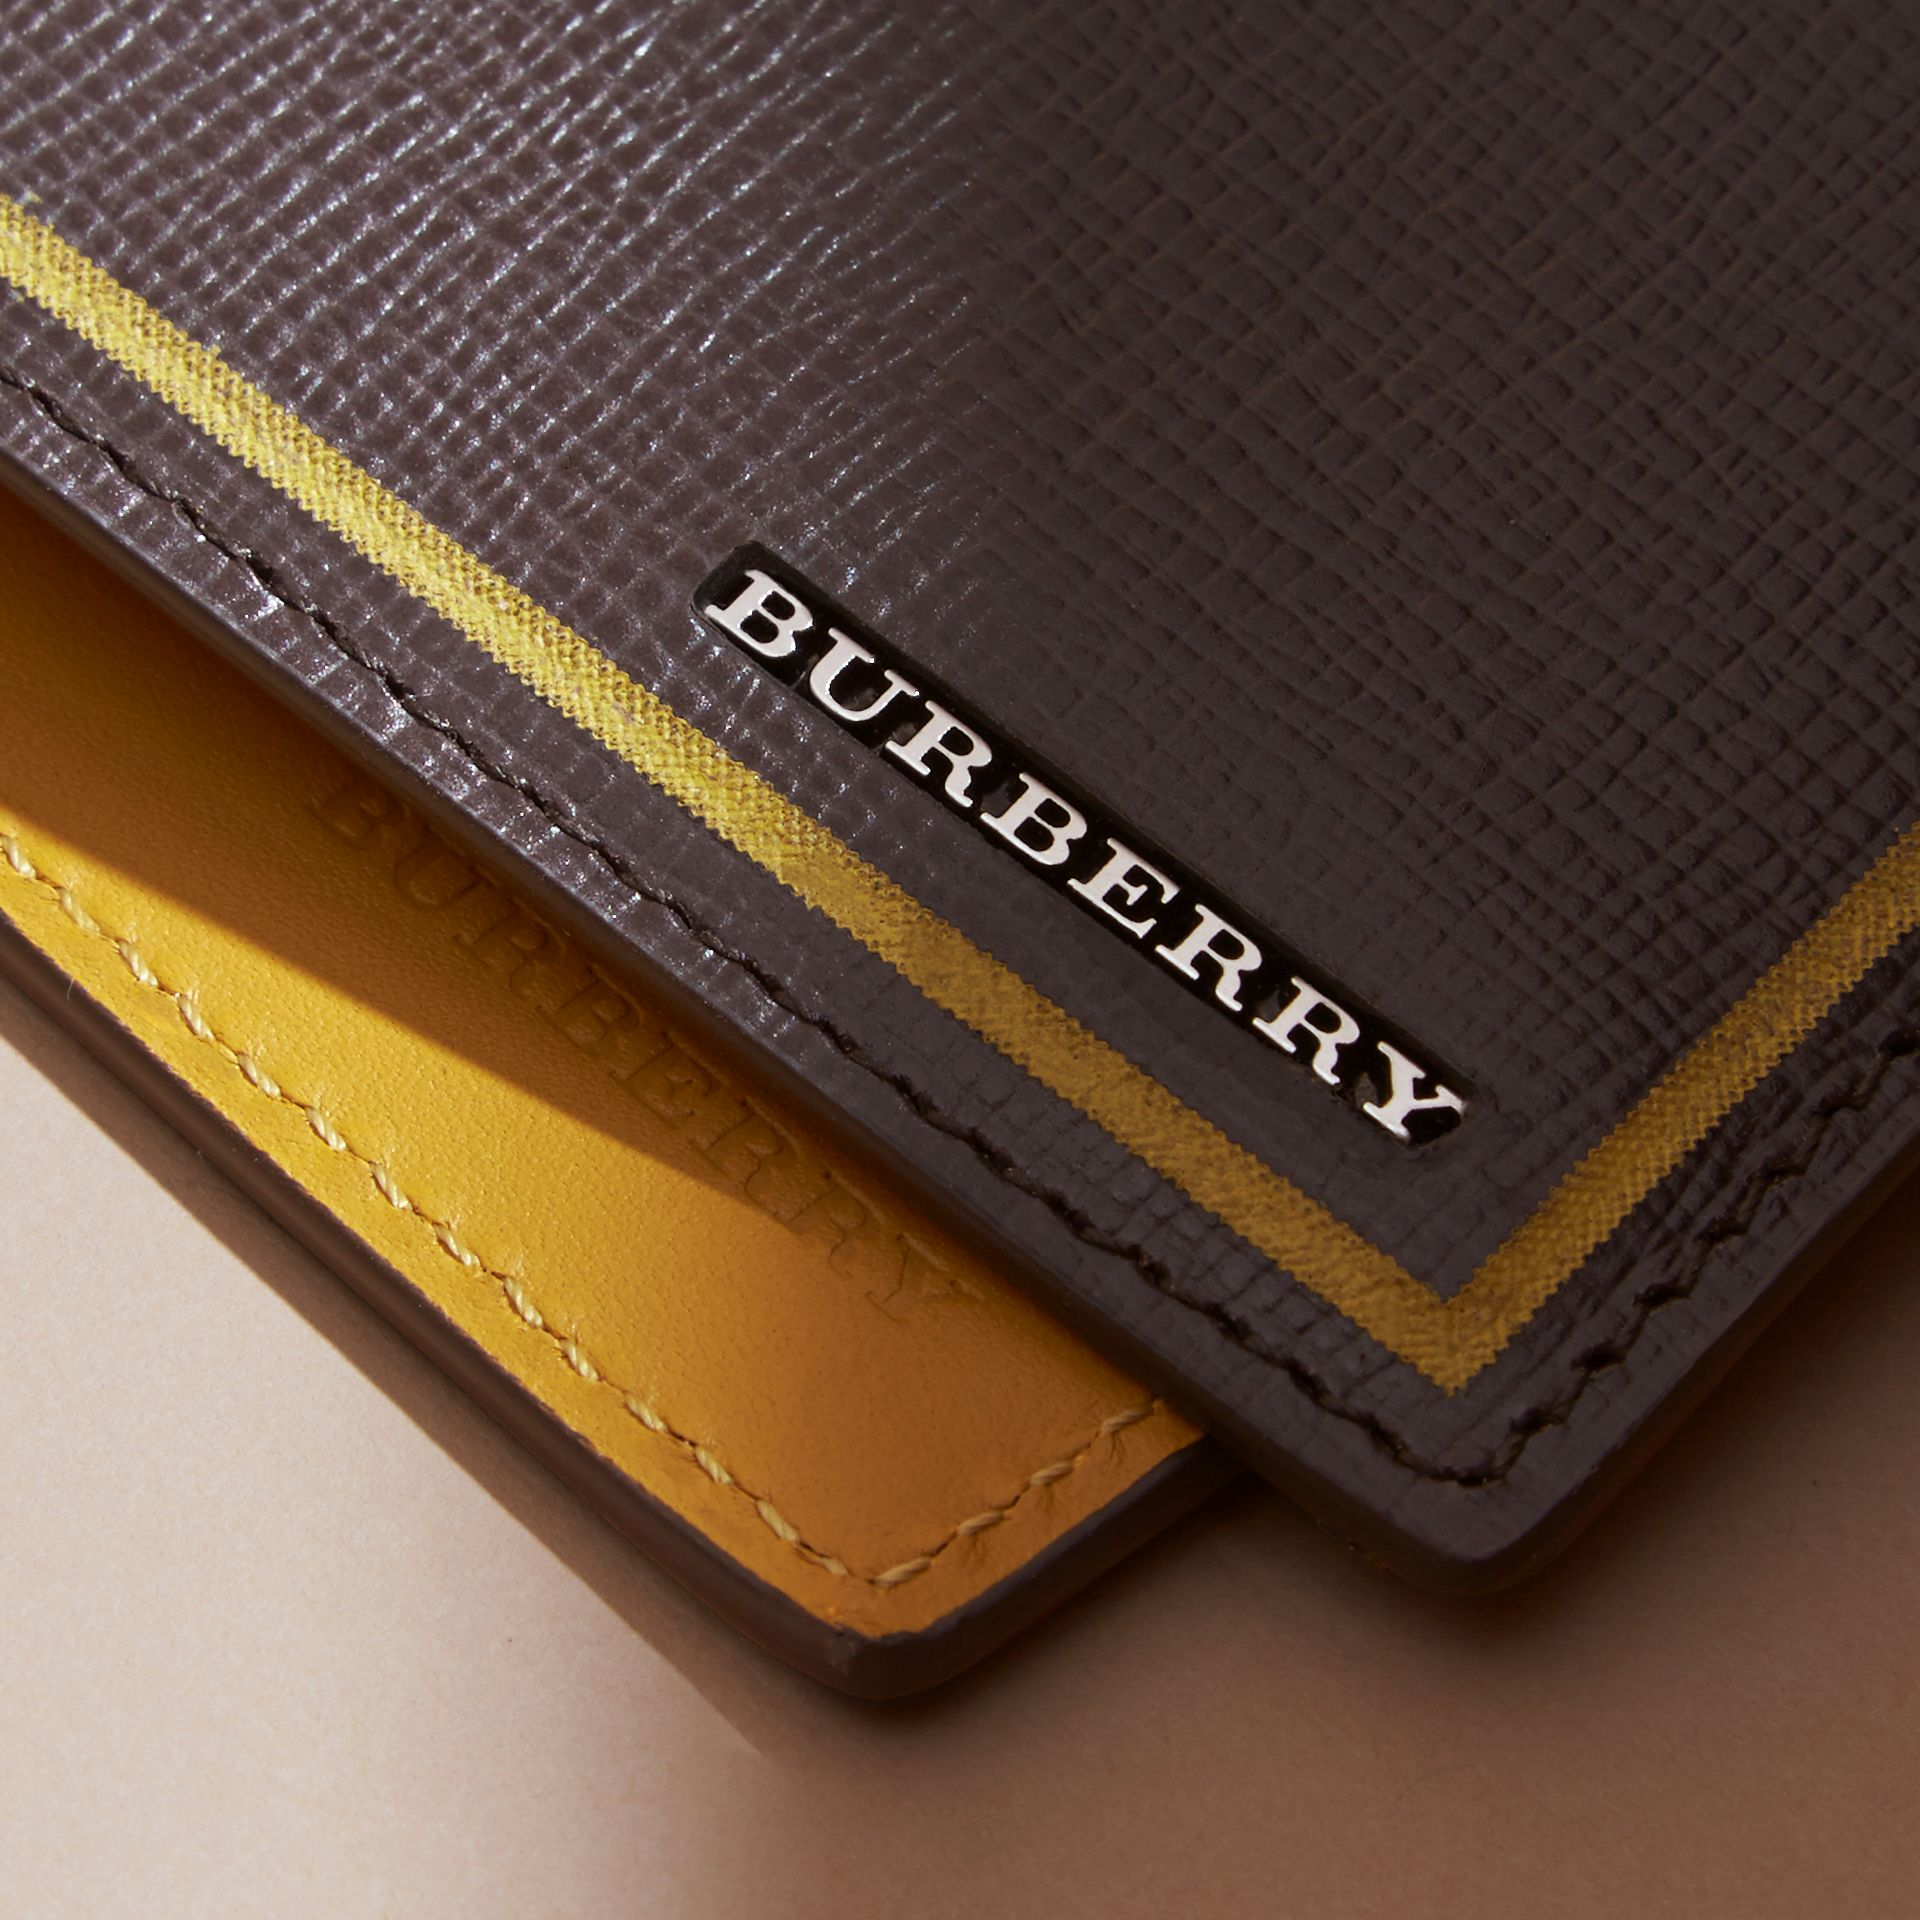 Border Detail London Leather Bifold Wallet in Peppercorn - gallery image 2